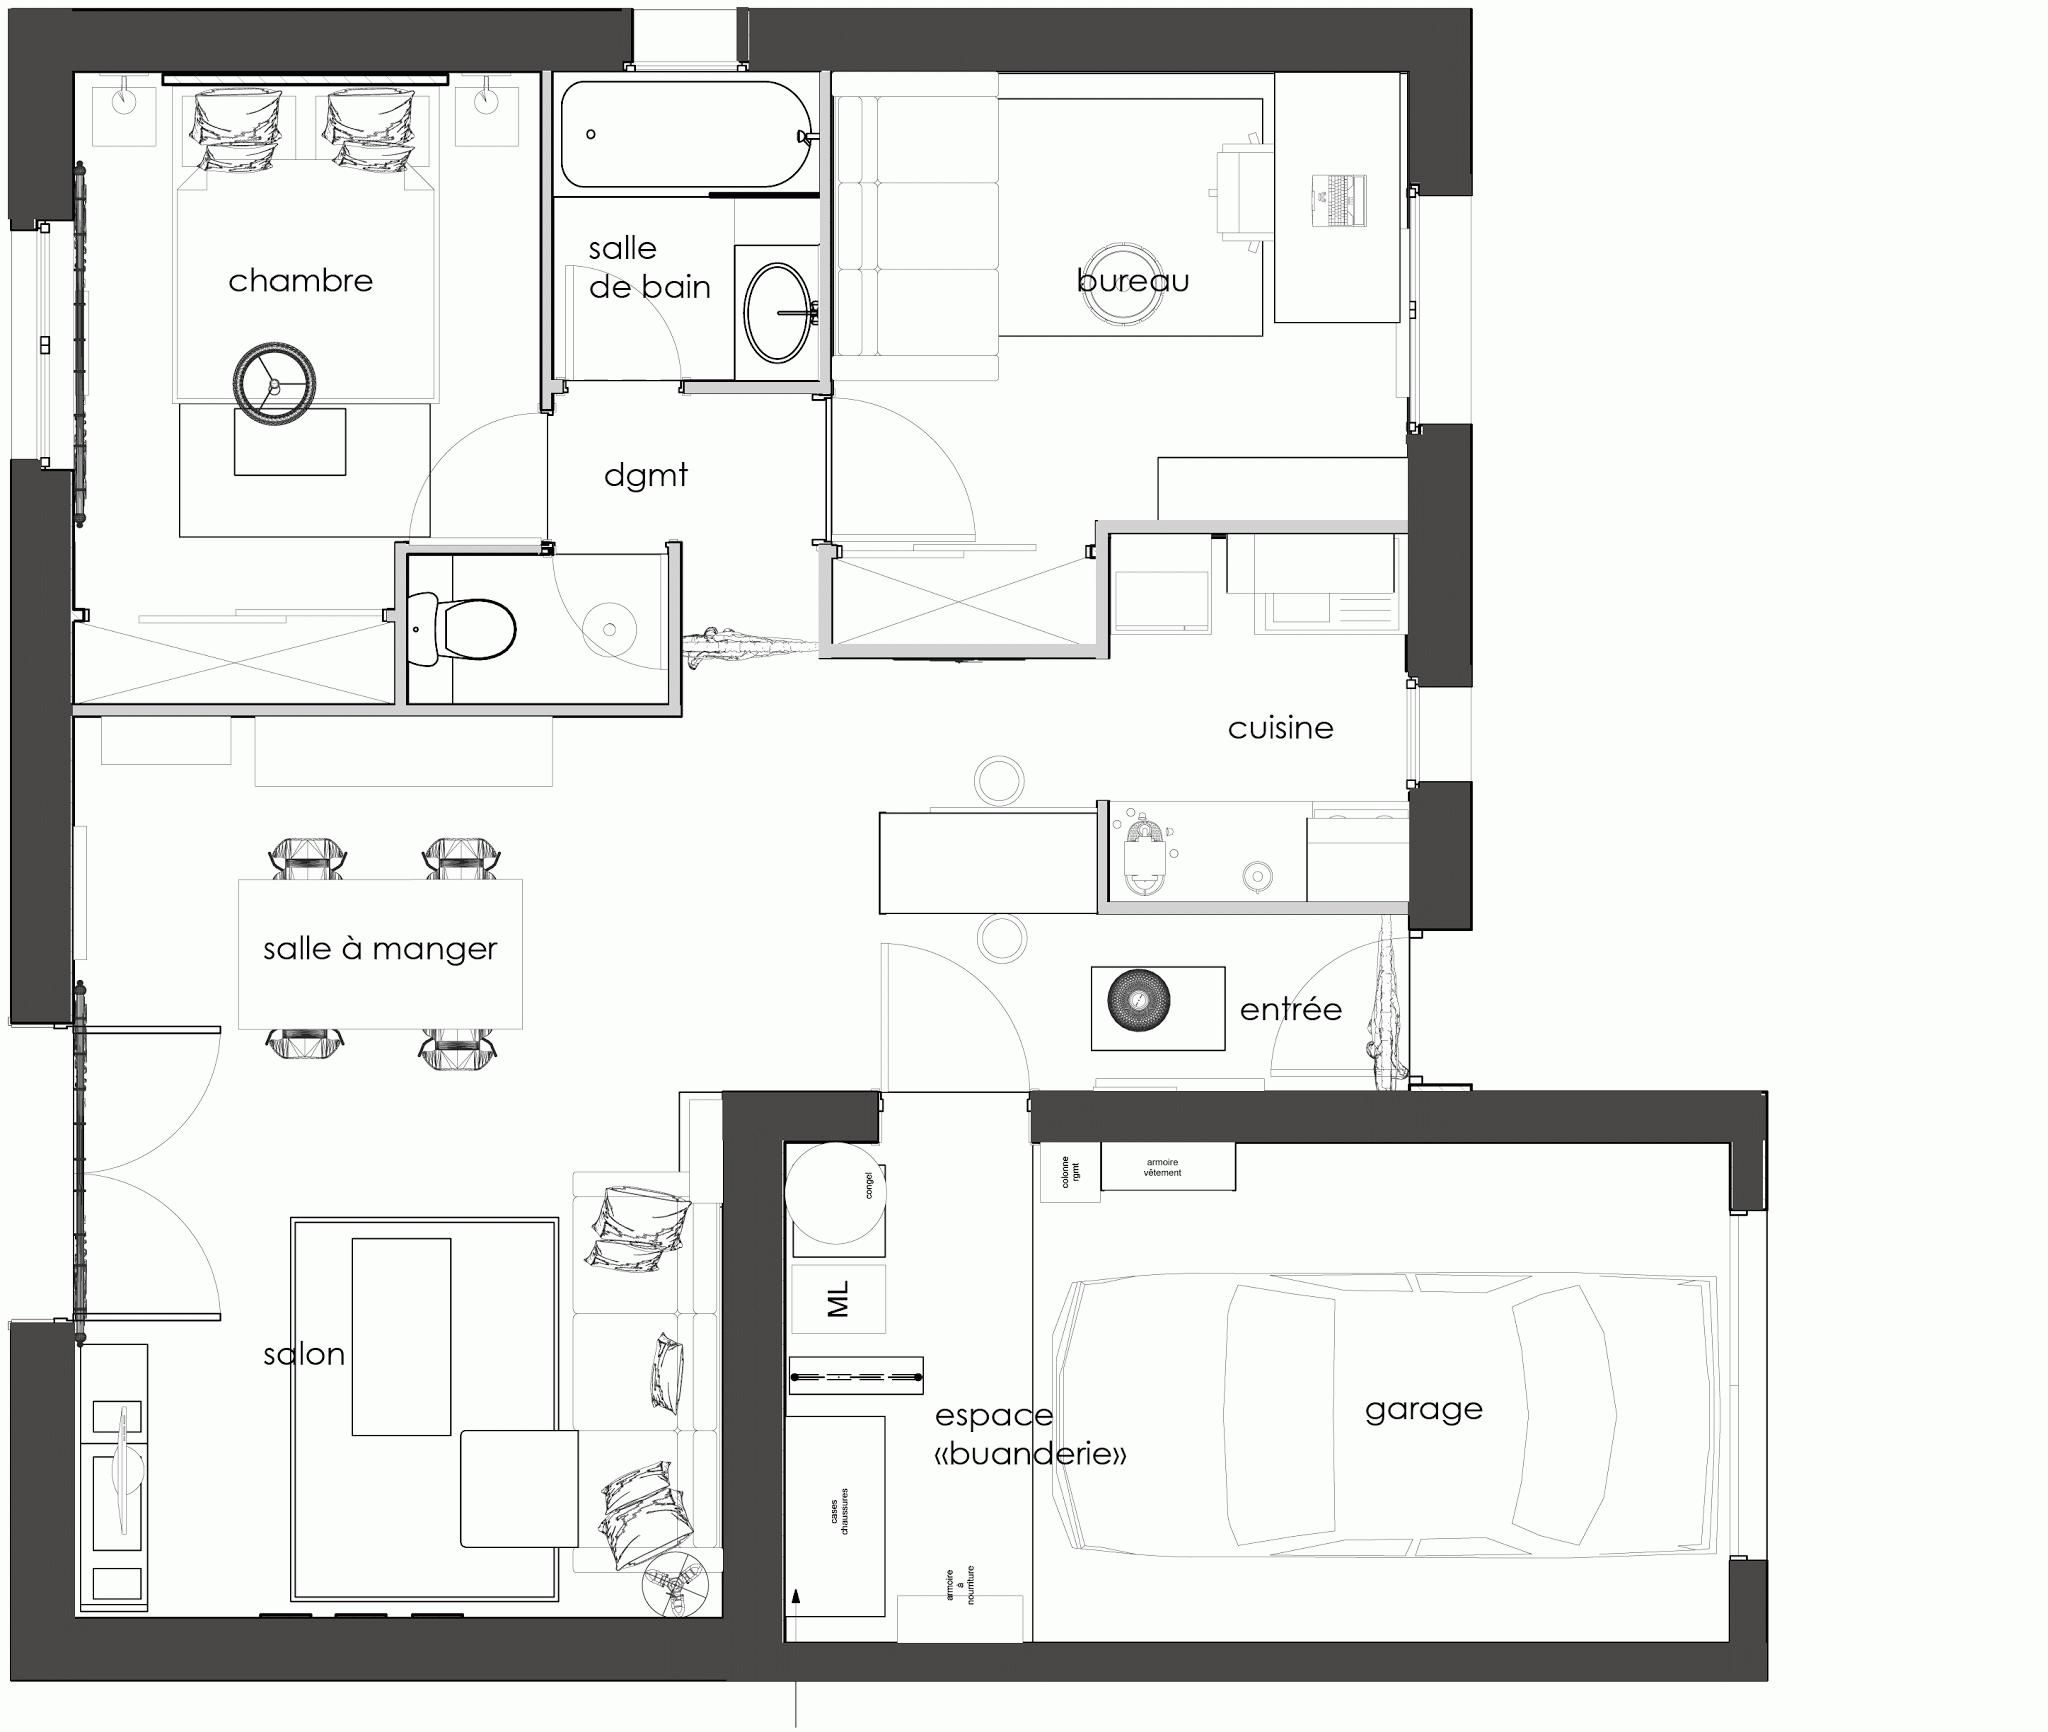 16 Plan Maison R 1 150m2 Senegal In 2020 How To Plan Good Company Floor Plans